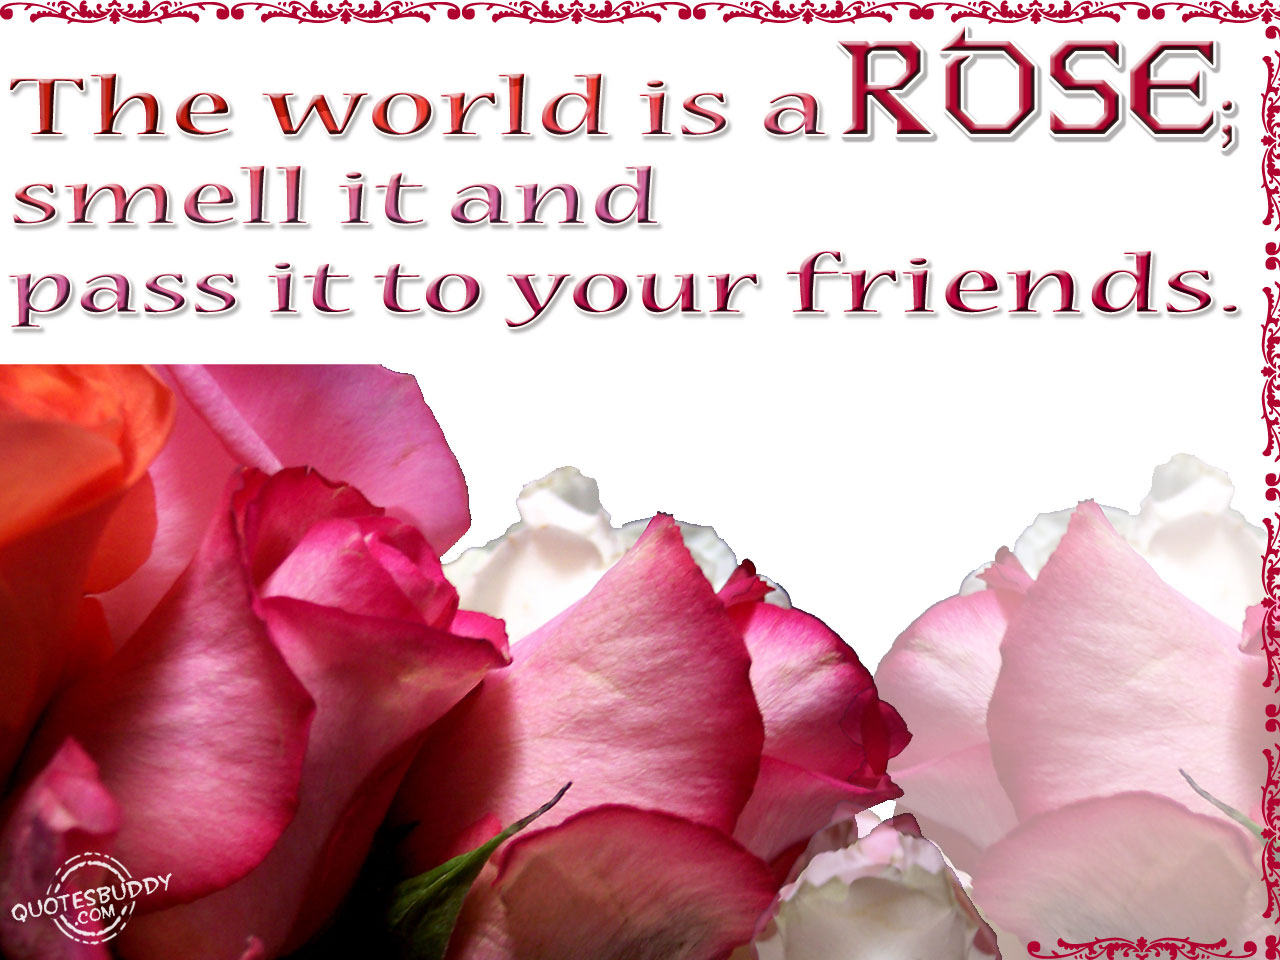 The World is a Rose,smell it and pass it to your friends ~ Flower Quote